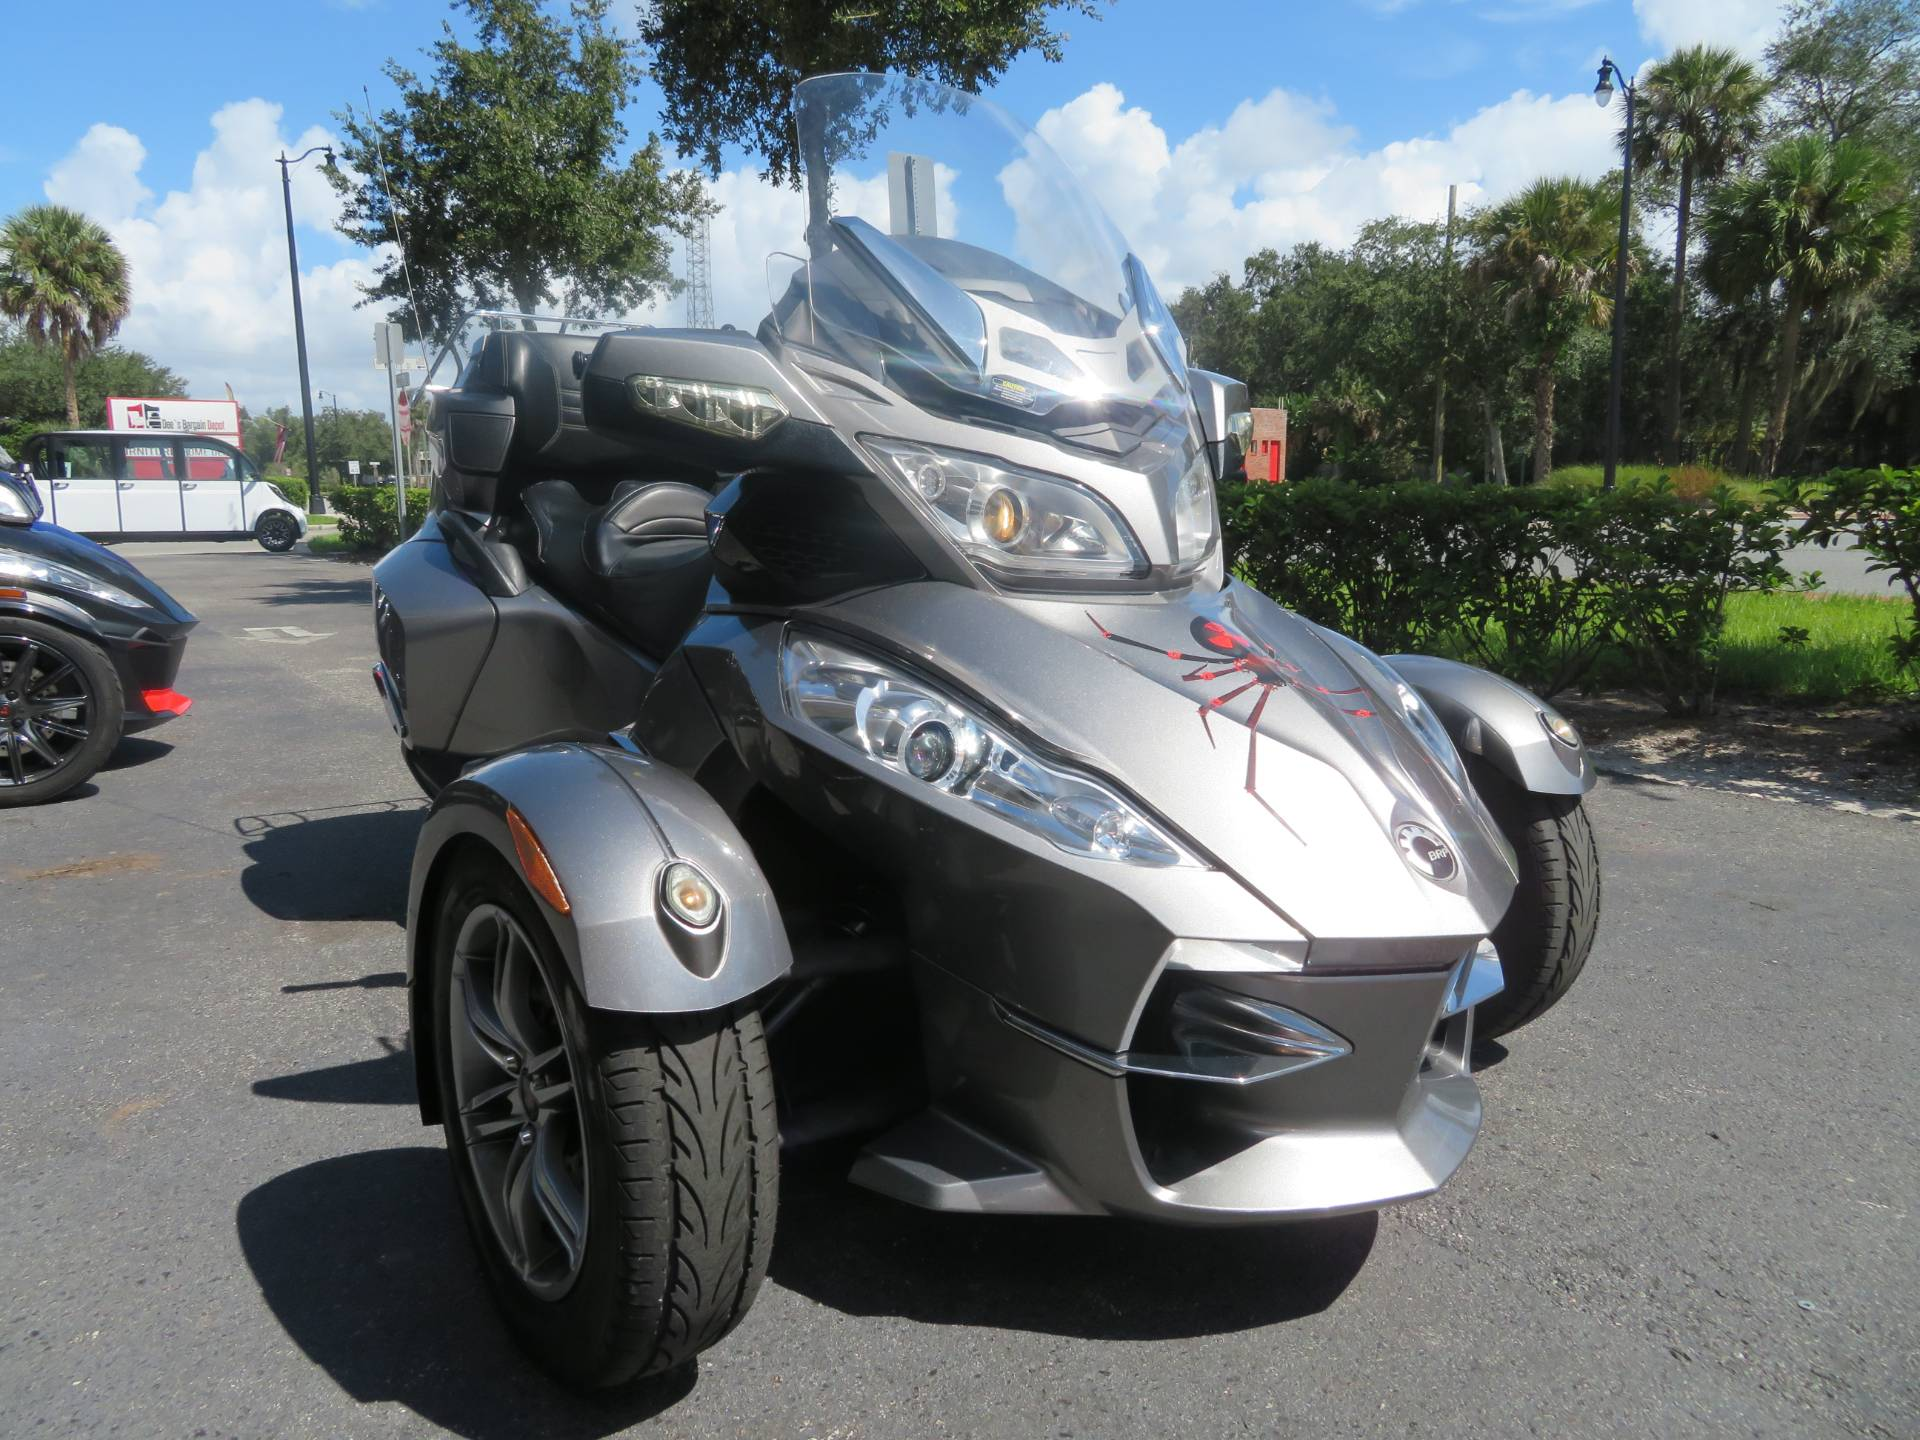 2012 Can-Am Spyder® RT-S SE5 in Sanford, Florida - Photo 3